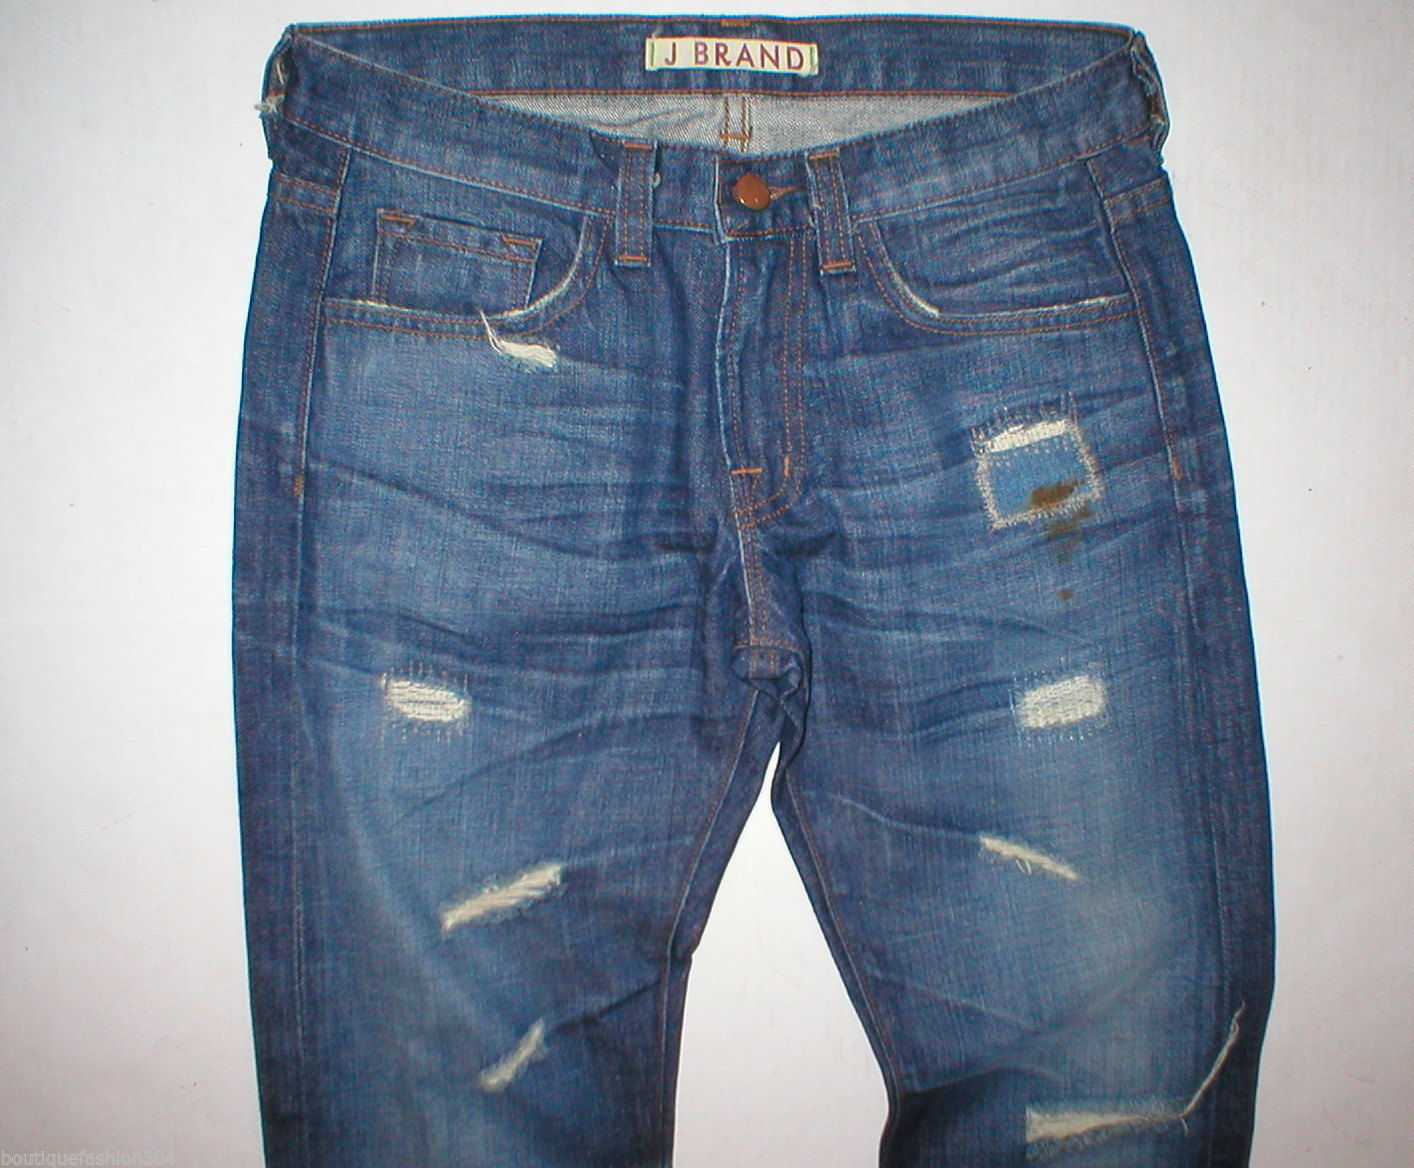 Destroy J Brand Jeans New 25 Distressed Tall 27 X 35 Womens Skinny Straight Dark image 2